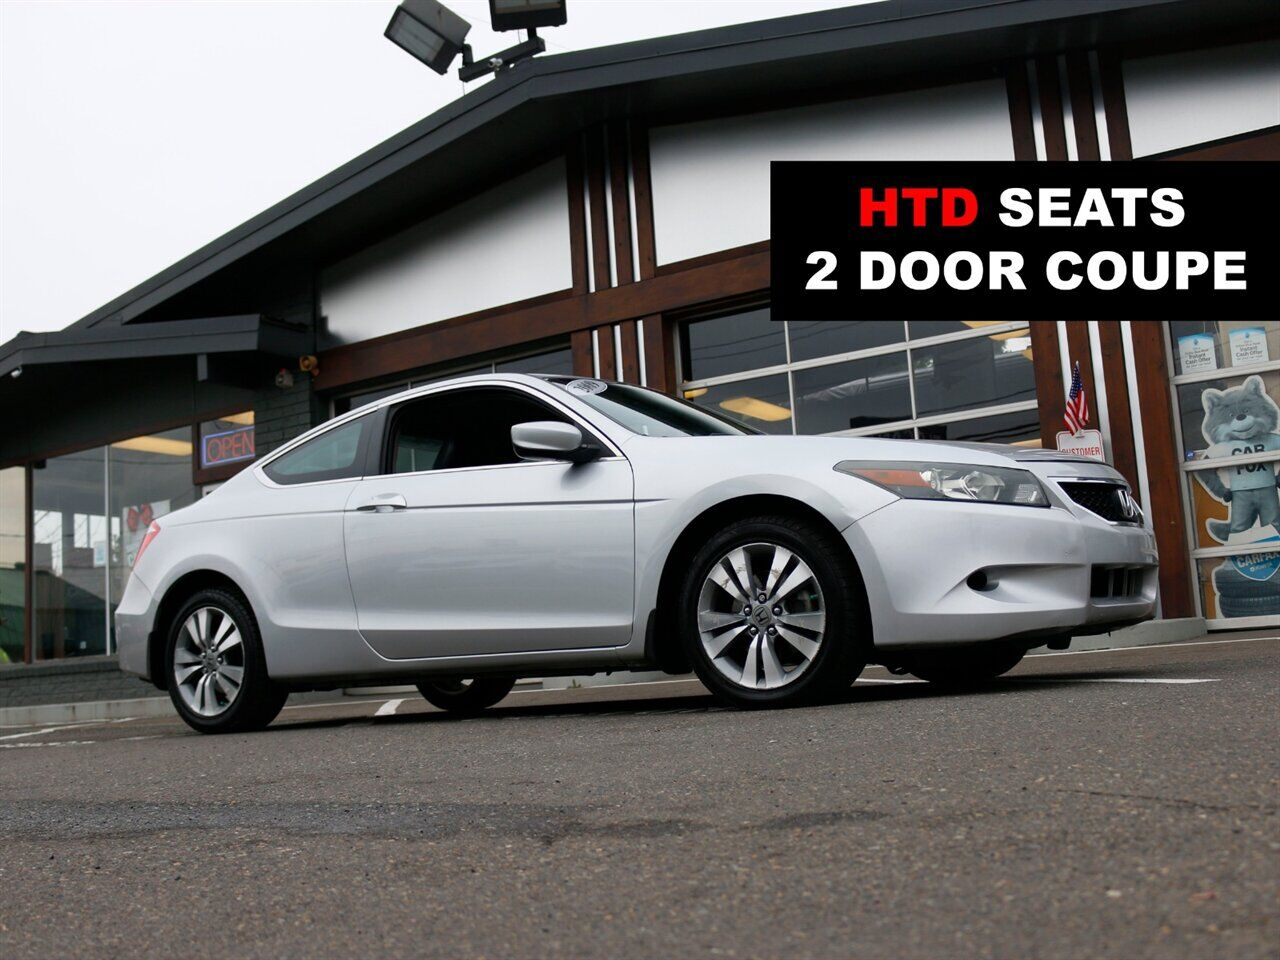 2009 Honda Accord EX-L LEATHER / LOADED / HTS SEATS Beaverton OR